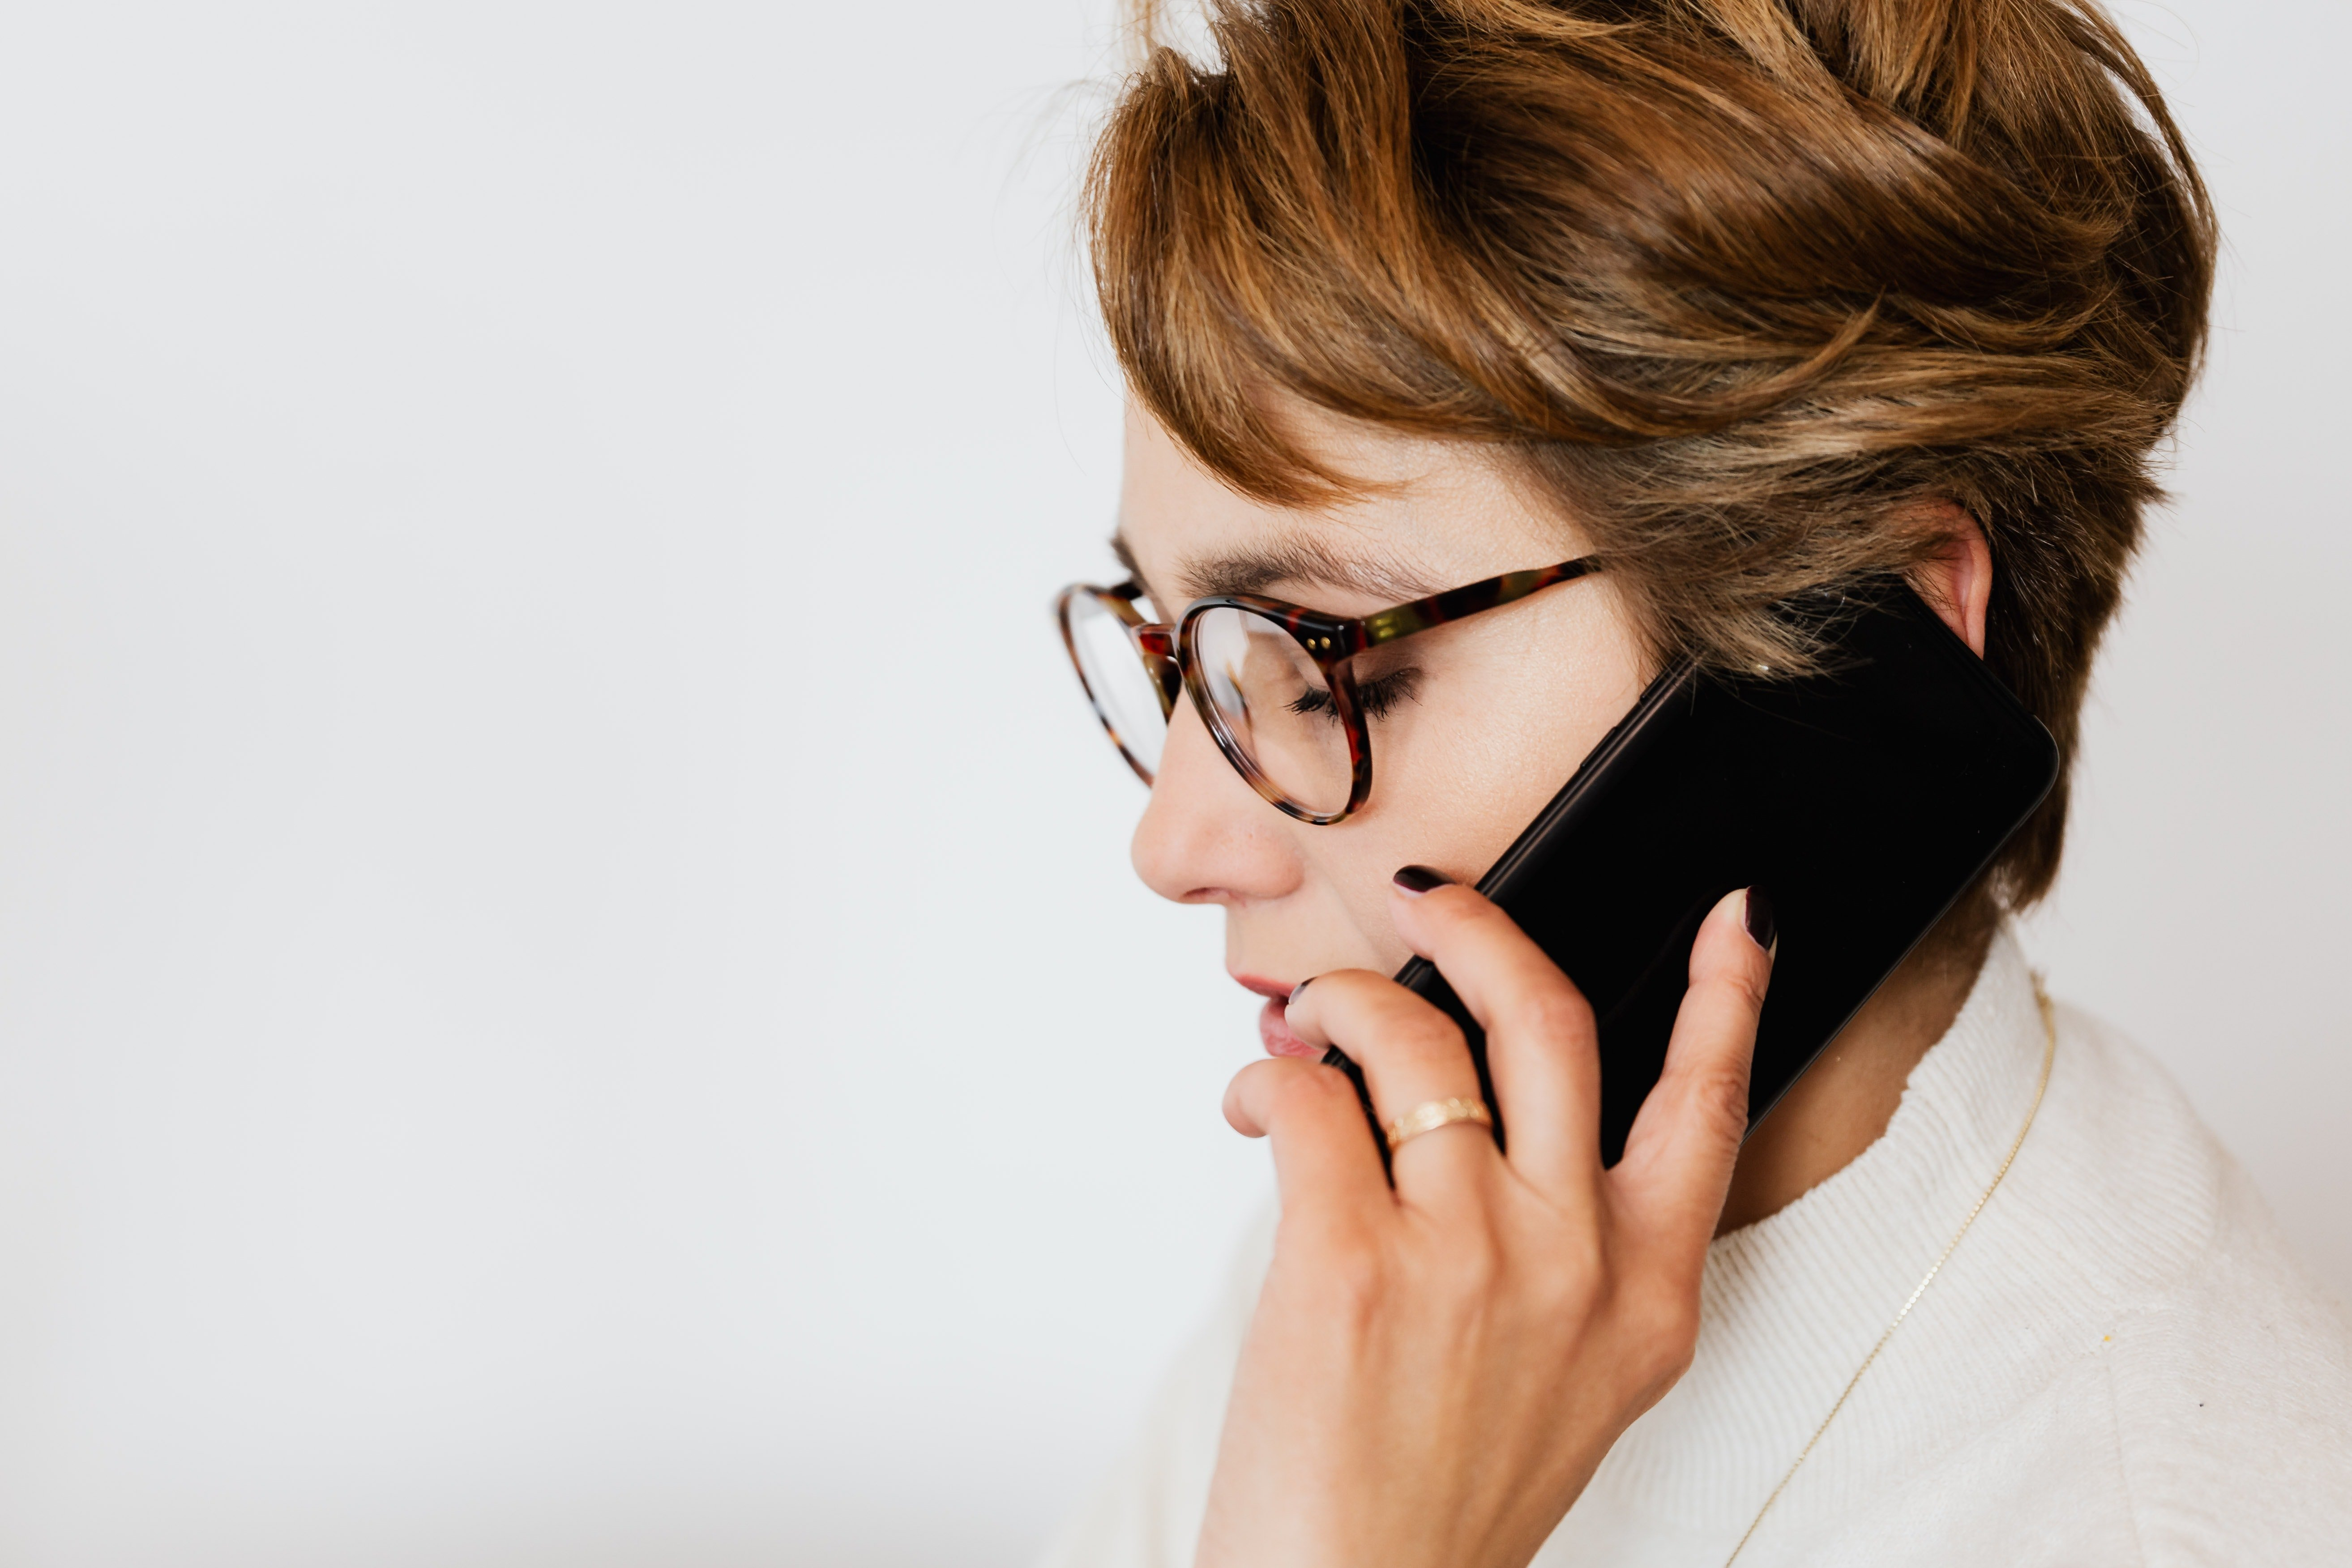 I called Jessica so that she could accompany me, but she refused   Photo: Pexels